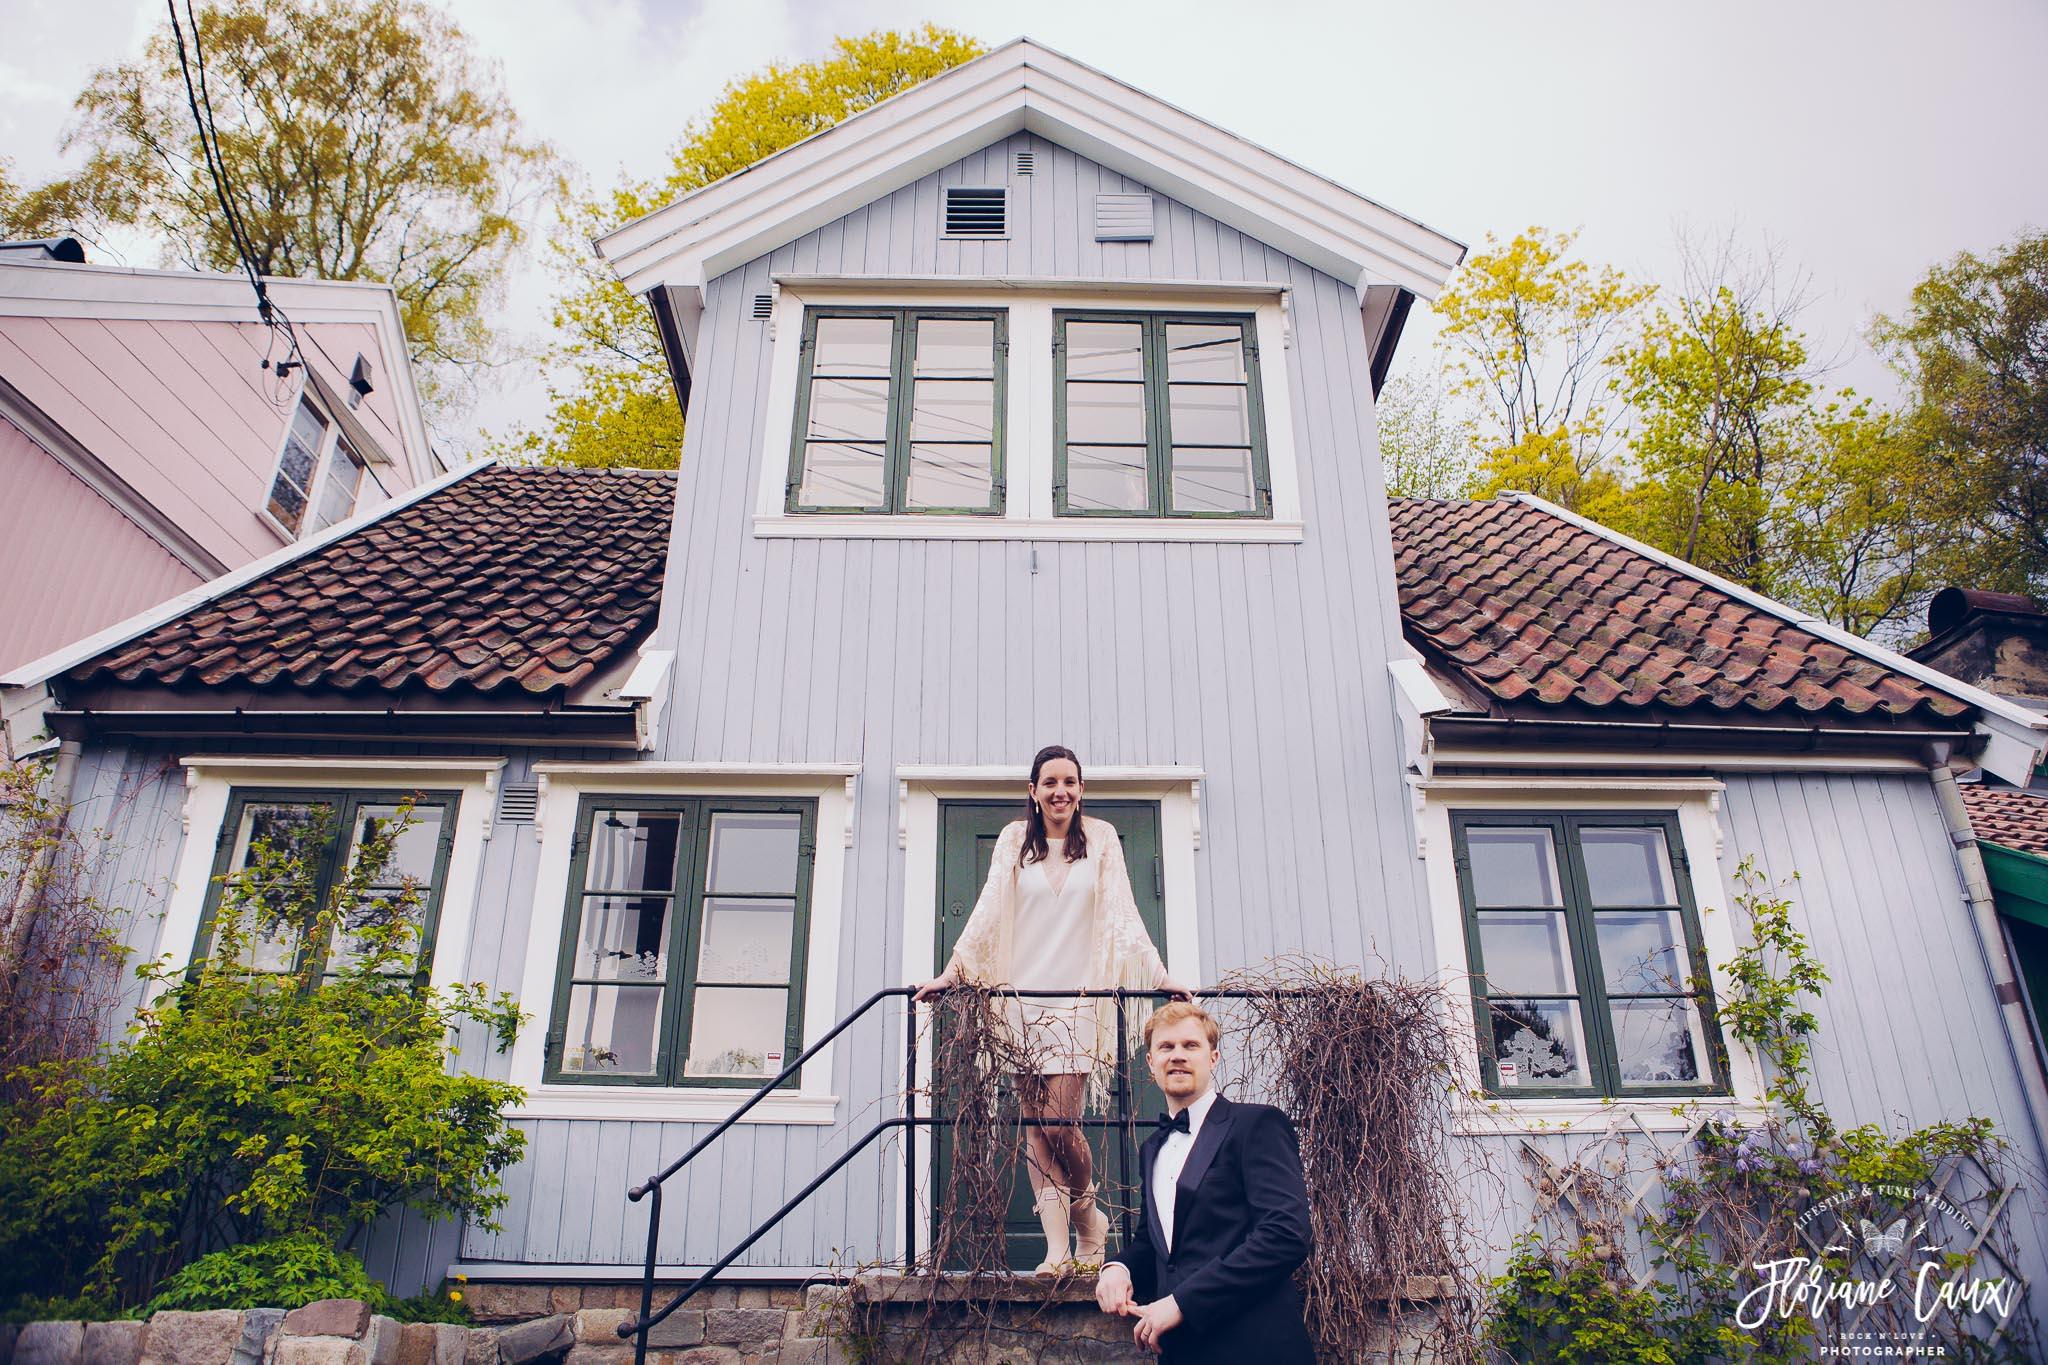 destination-wedding-photographer-oslo-norway-floriane-caux-10